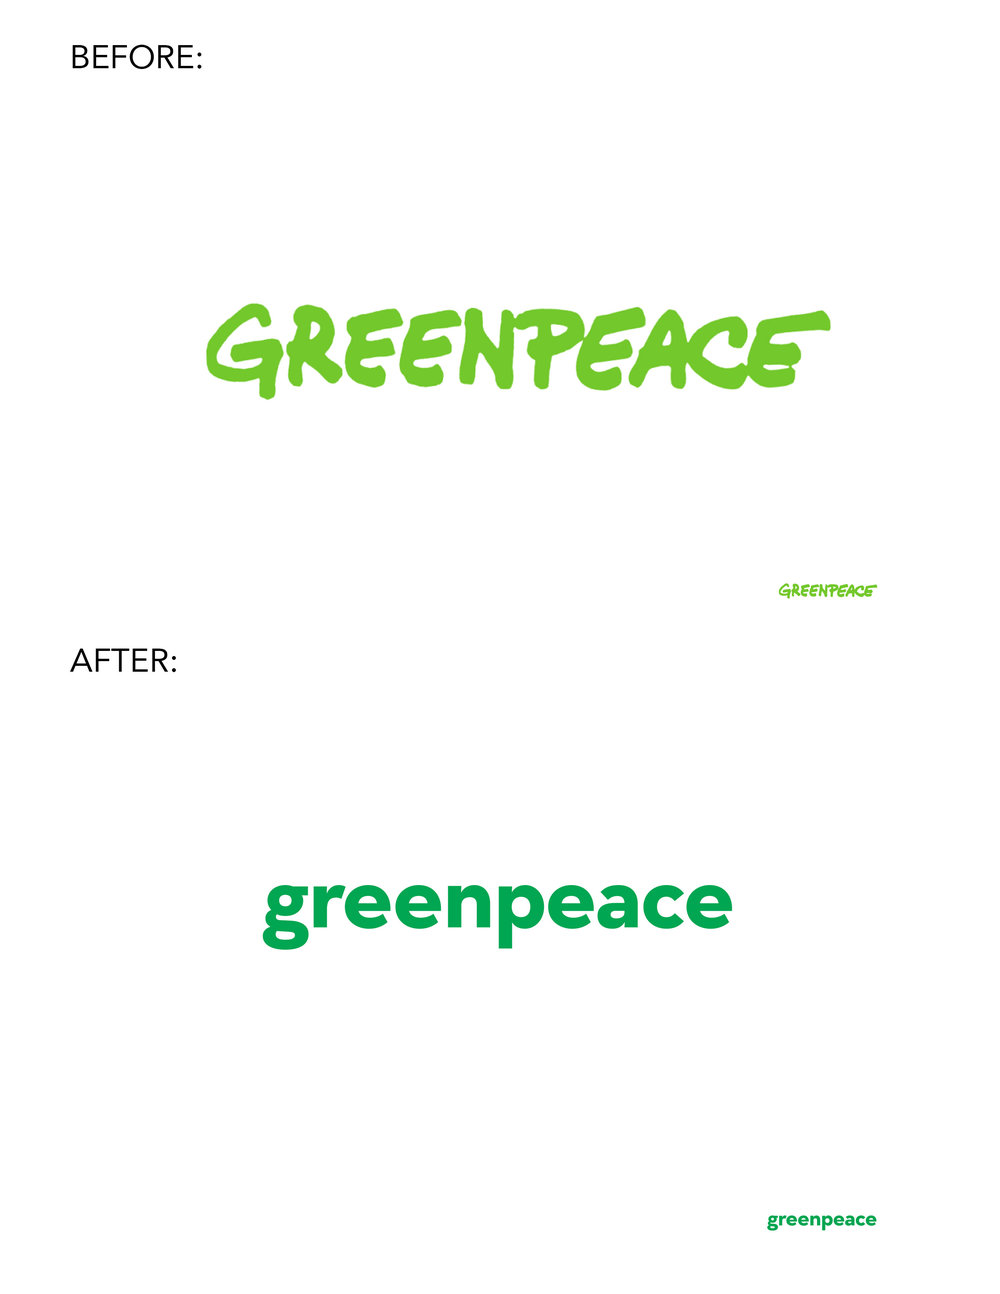 GreenpeaceBeforeAfter.jpg